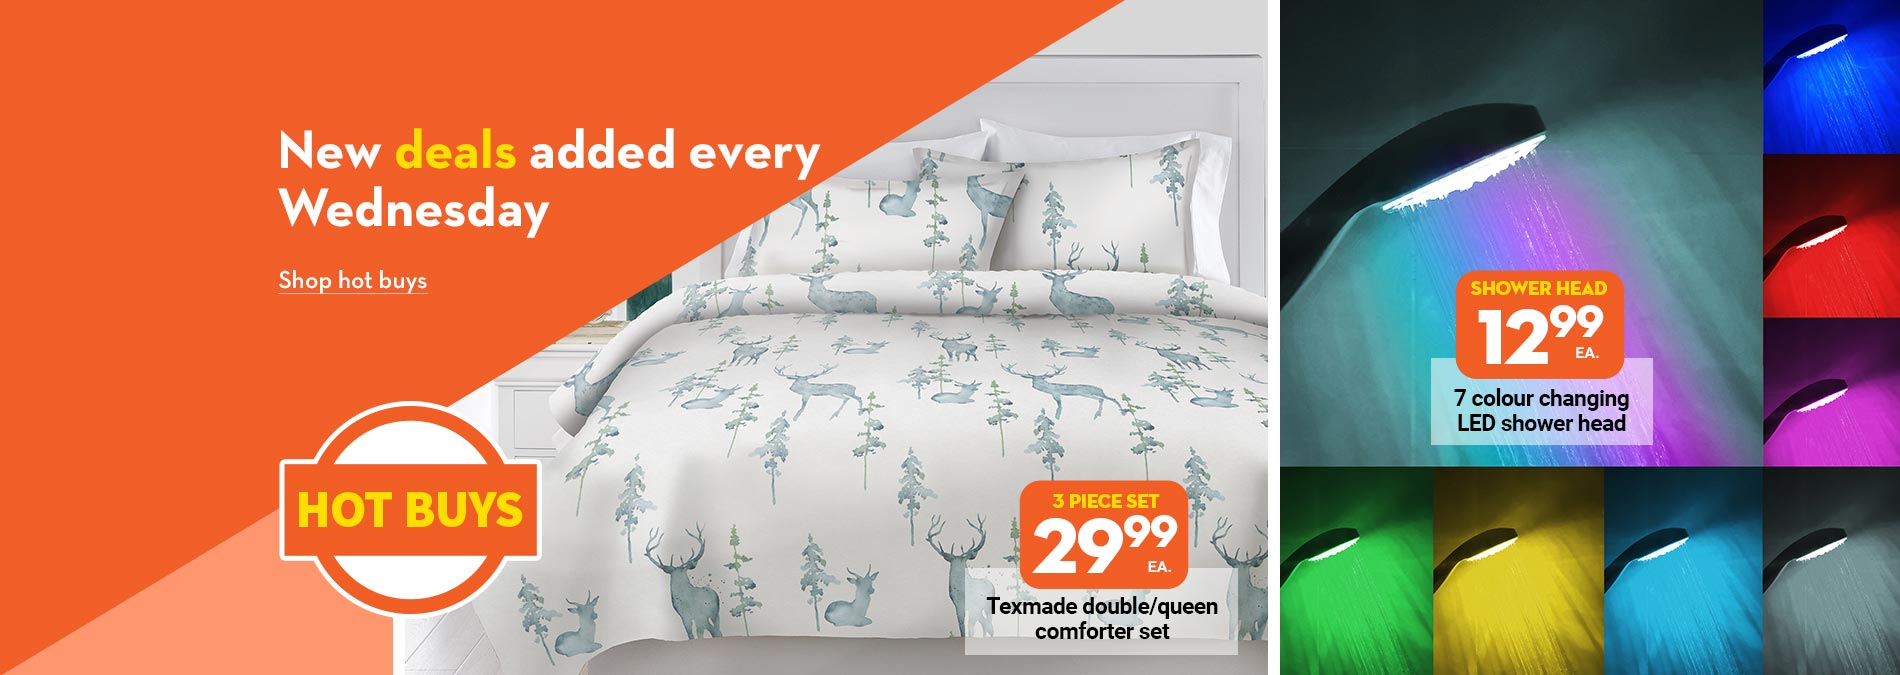 Hot Buys: New deals added every Wednesday. 29.99 Texmade double/queen comforter set. 12.99 7 Colour changing LED shower head